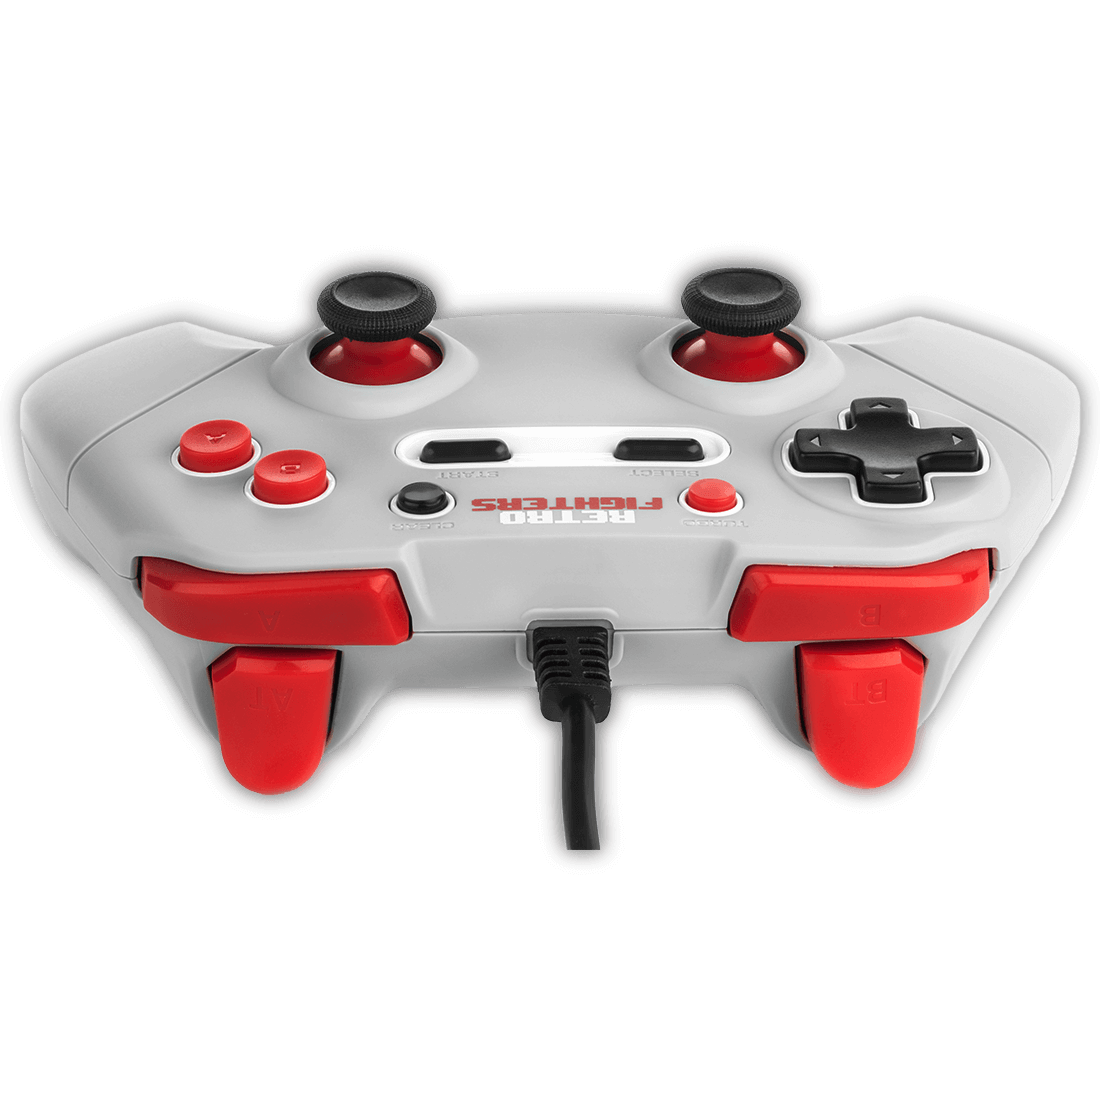 jab-gamepad-top_angle-1100x1100.png